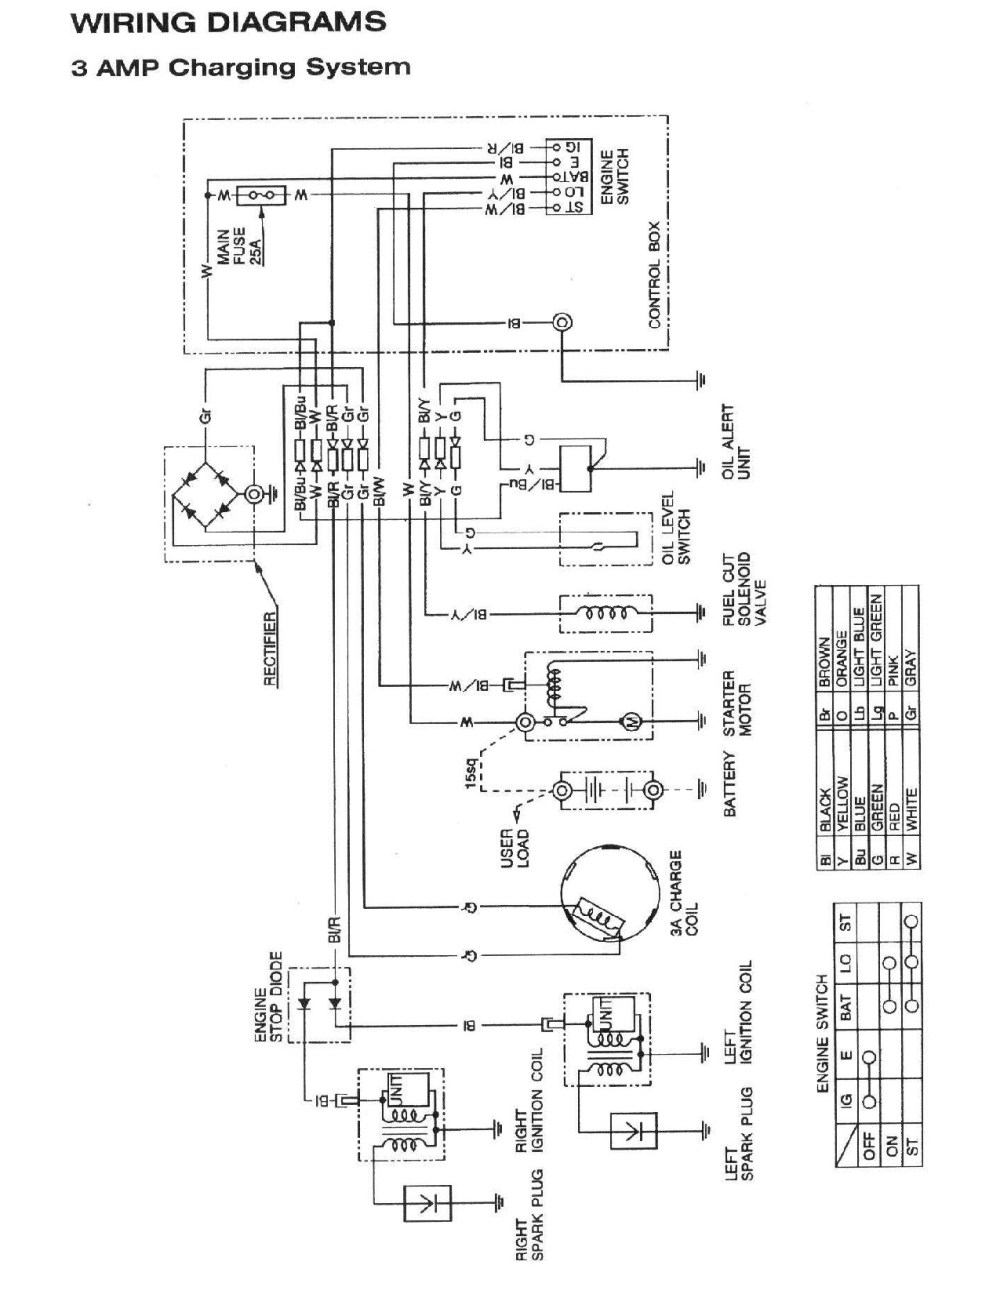 medium resolution of gx390 coil wiring diagram wiring diagram technic honda gx390 charging system wiring